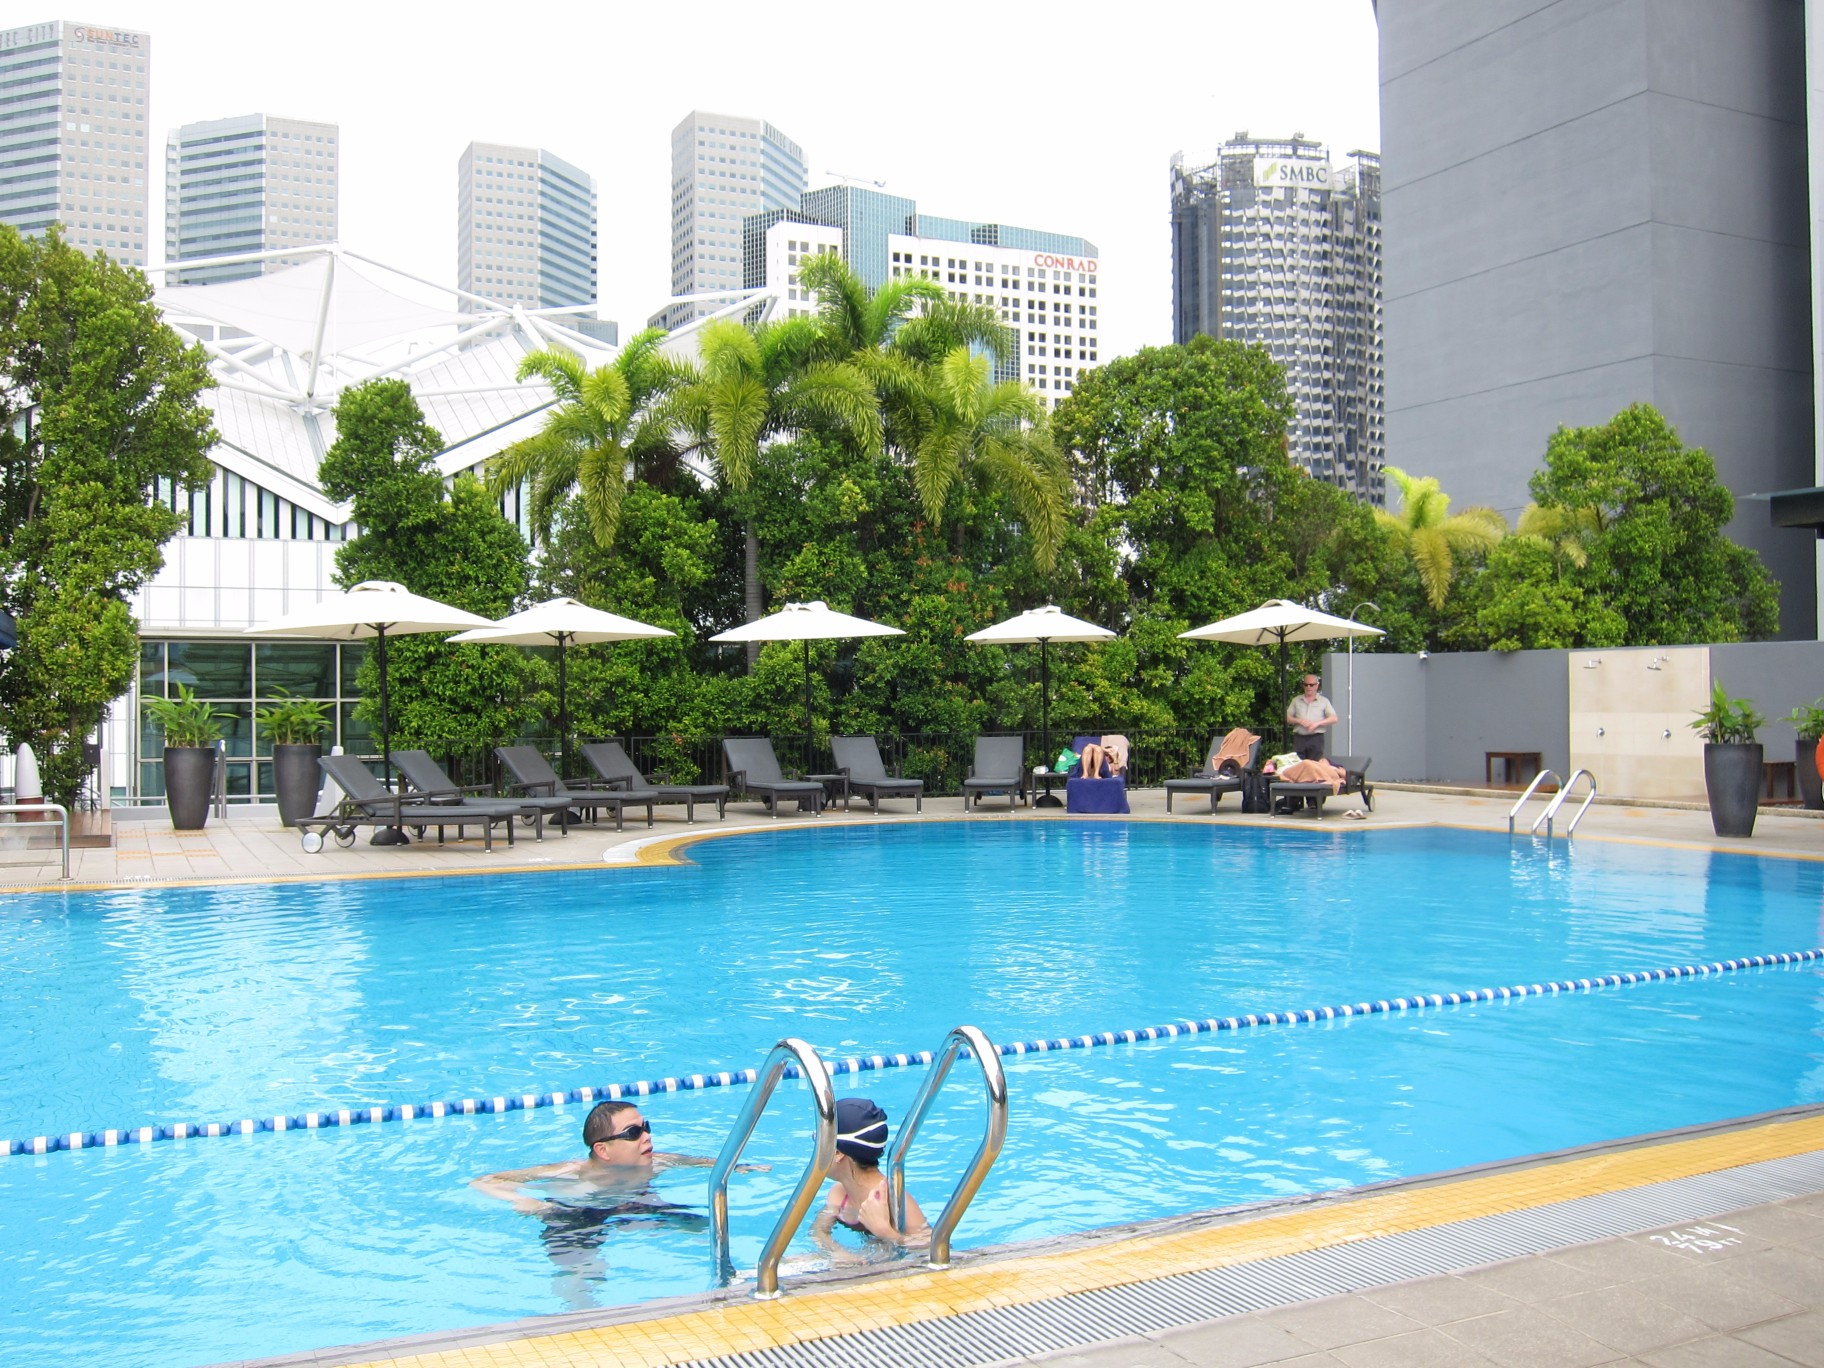 18 marina mandarin pool 2 asia 361 - Marina mandarin singapore swimming pool ...